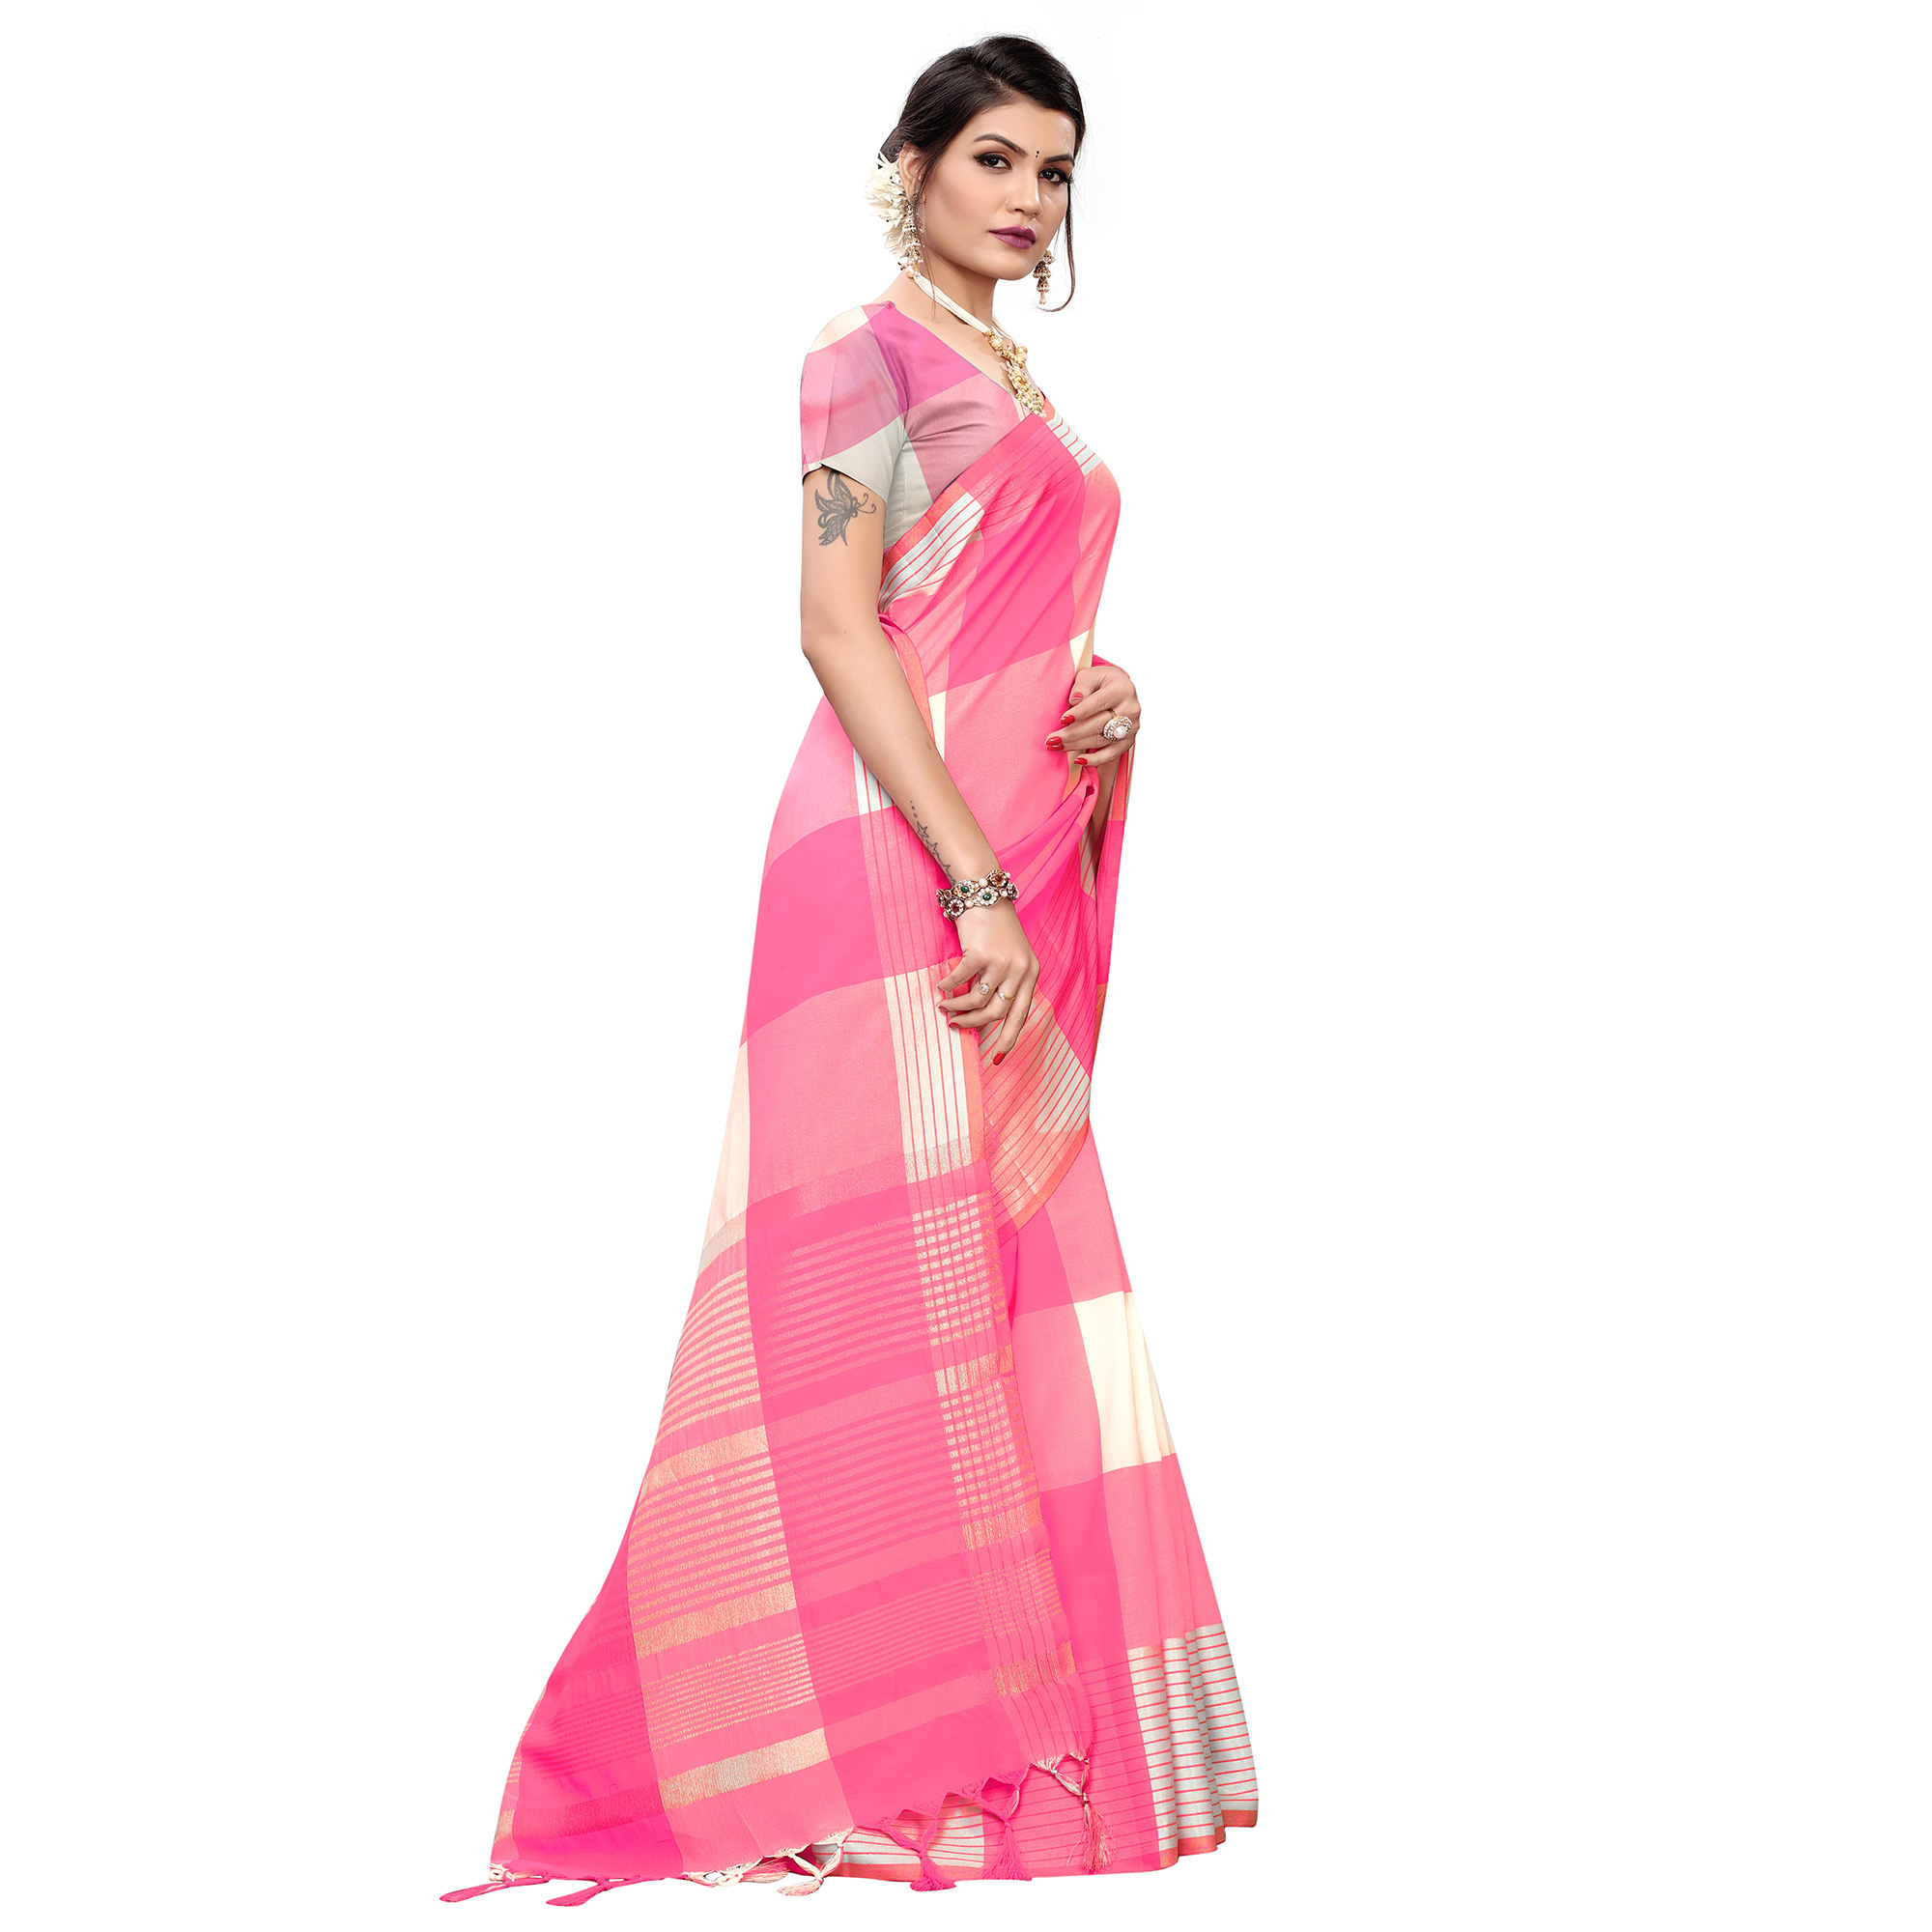 Engrossing Pink Colored Festive Wear Printed Cotton Silk Saree